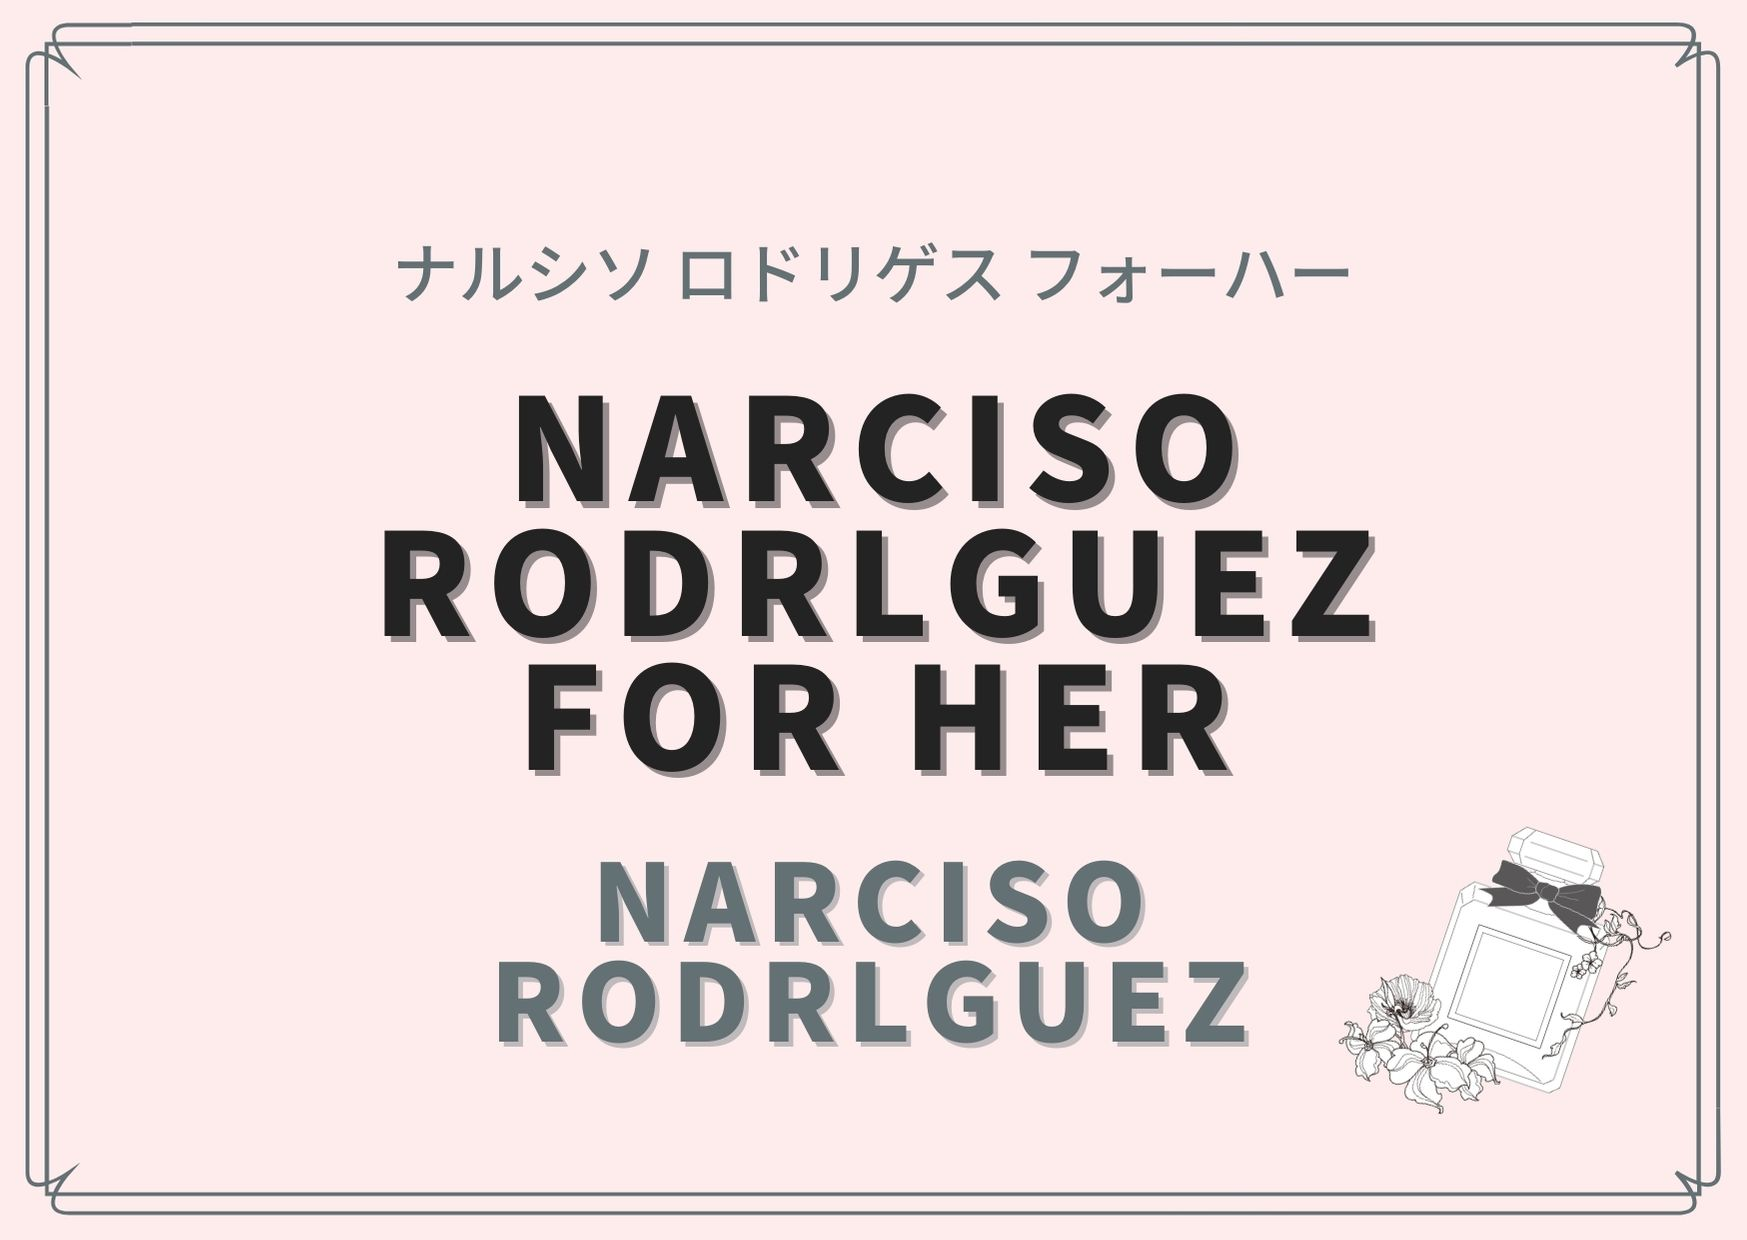 Narciso Rodrlguez for her(ナルシソ ロドリゲス フォーハー)/ Narciso Rodrlguez(ナルシソ ロドリゲス)